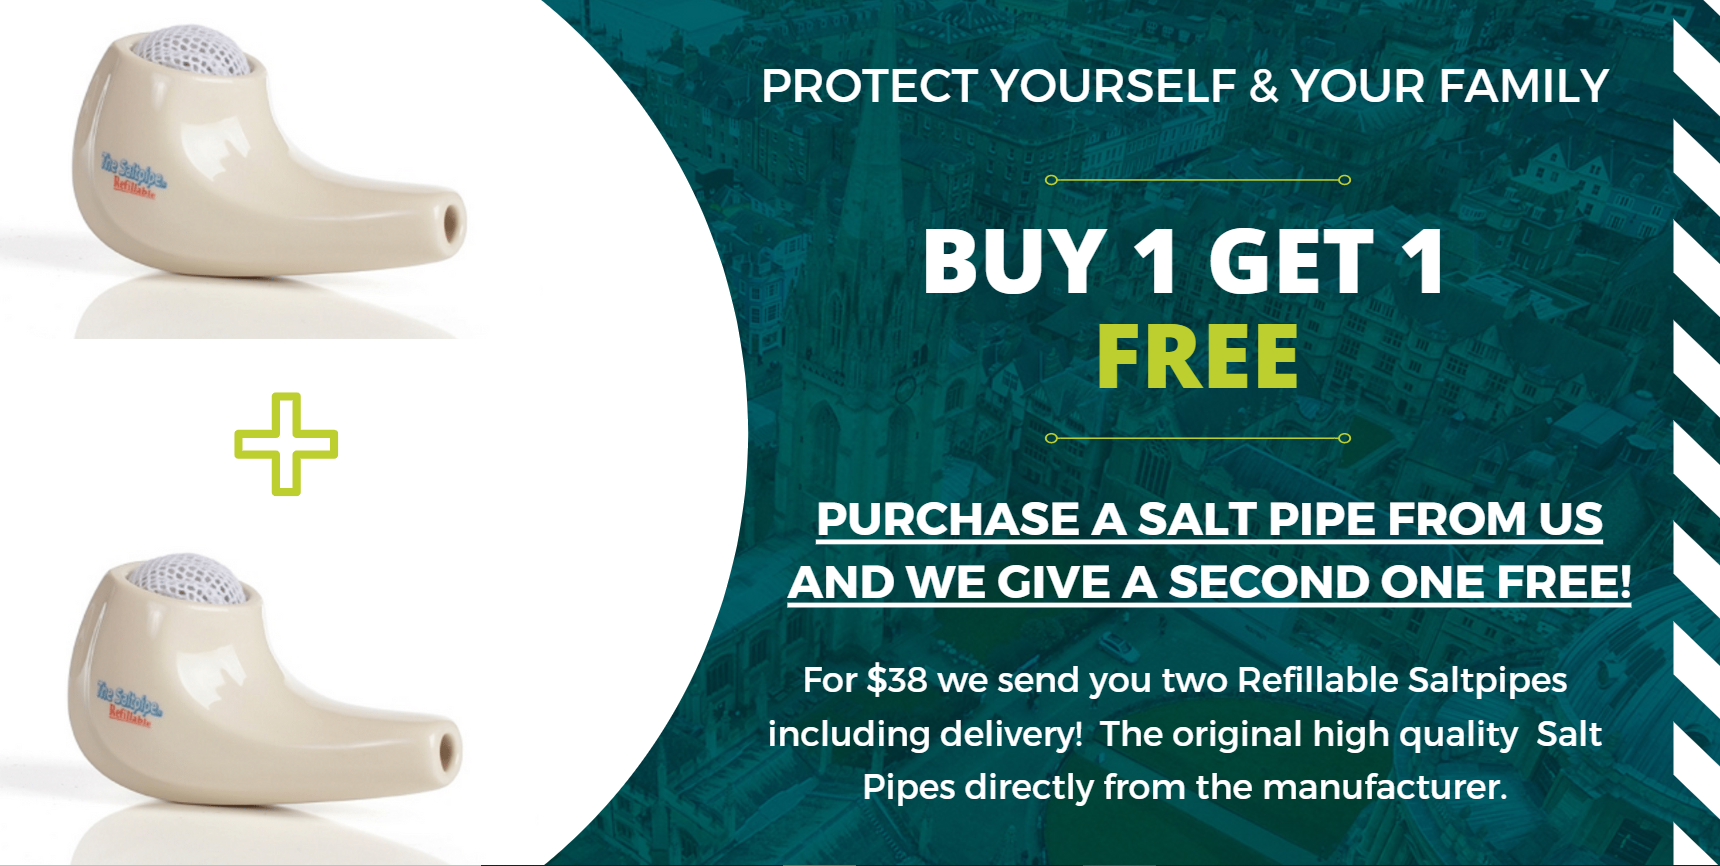 salt-pipe-promotion